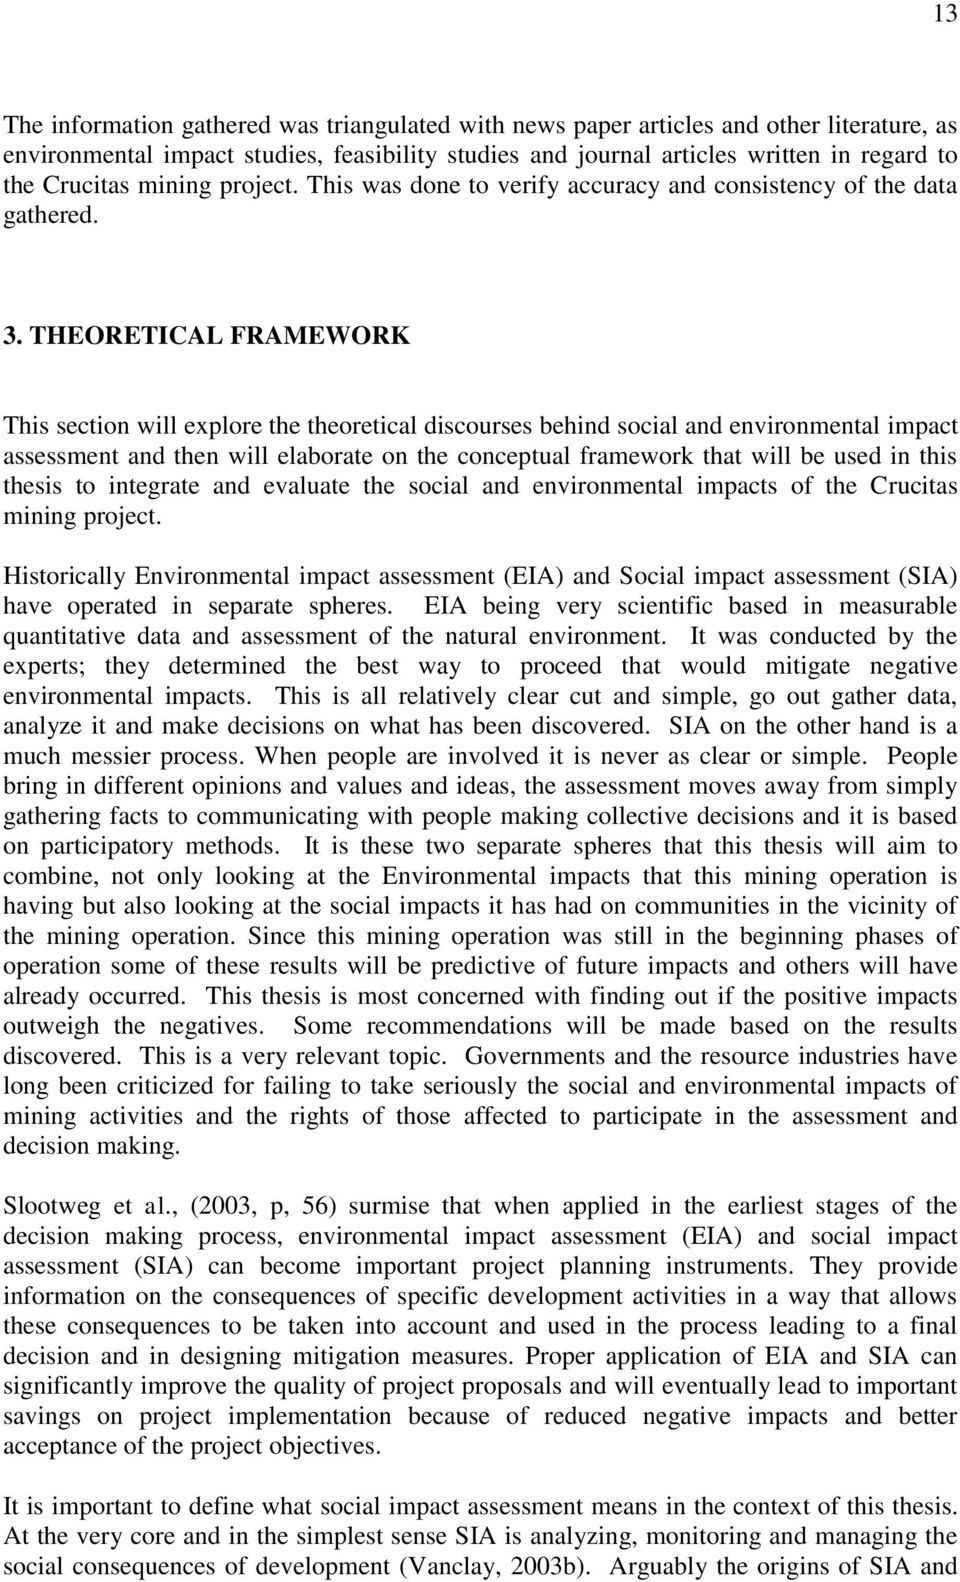 THEORETICAL FRAMEWORK This section will explore the theoretical discourses behind social and environmental impact assessment and then will elaborate on the conceptual framework that will be used in